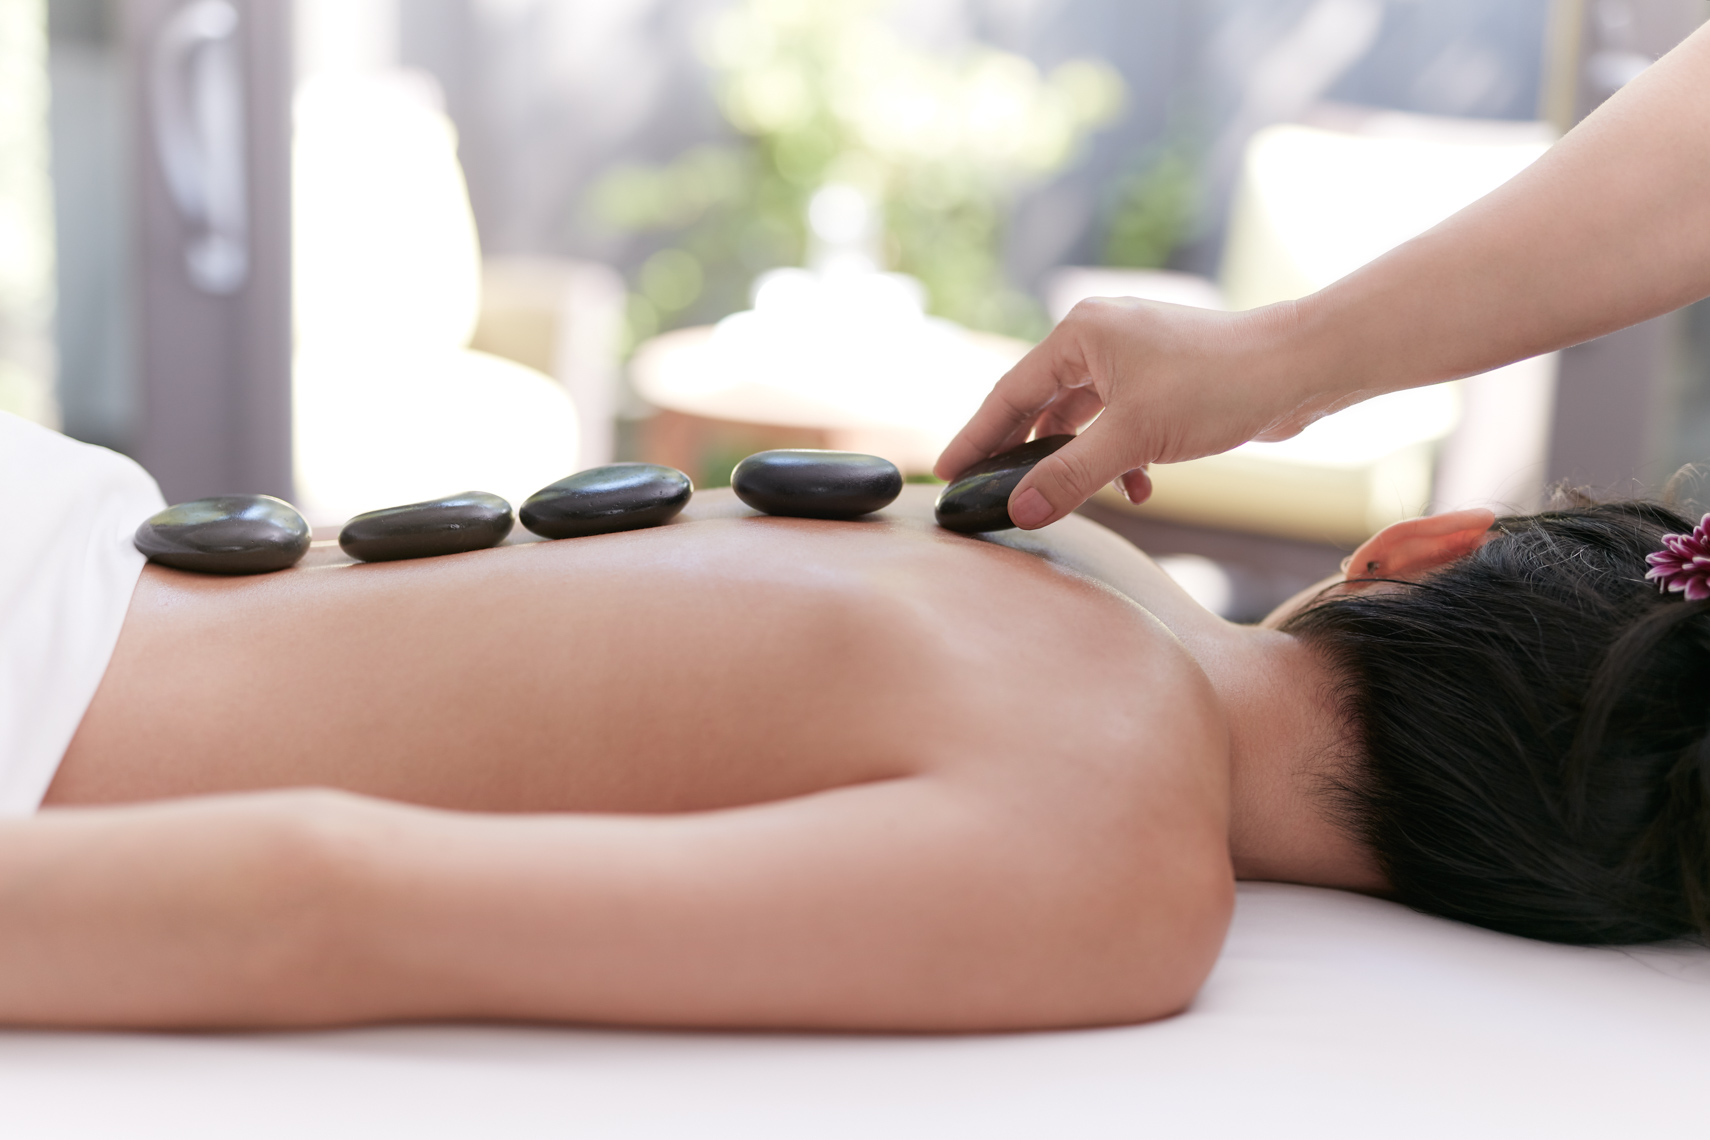 Asian woman laying on massage table while black river stones are being placed on her naked back